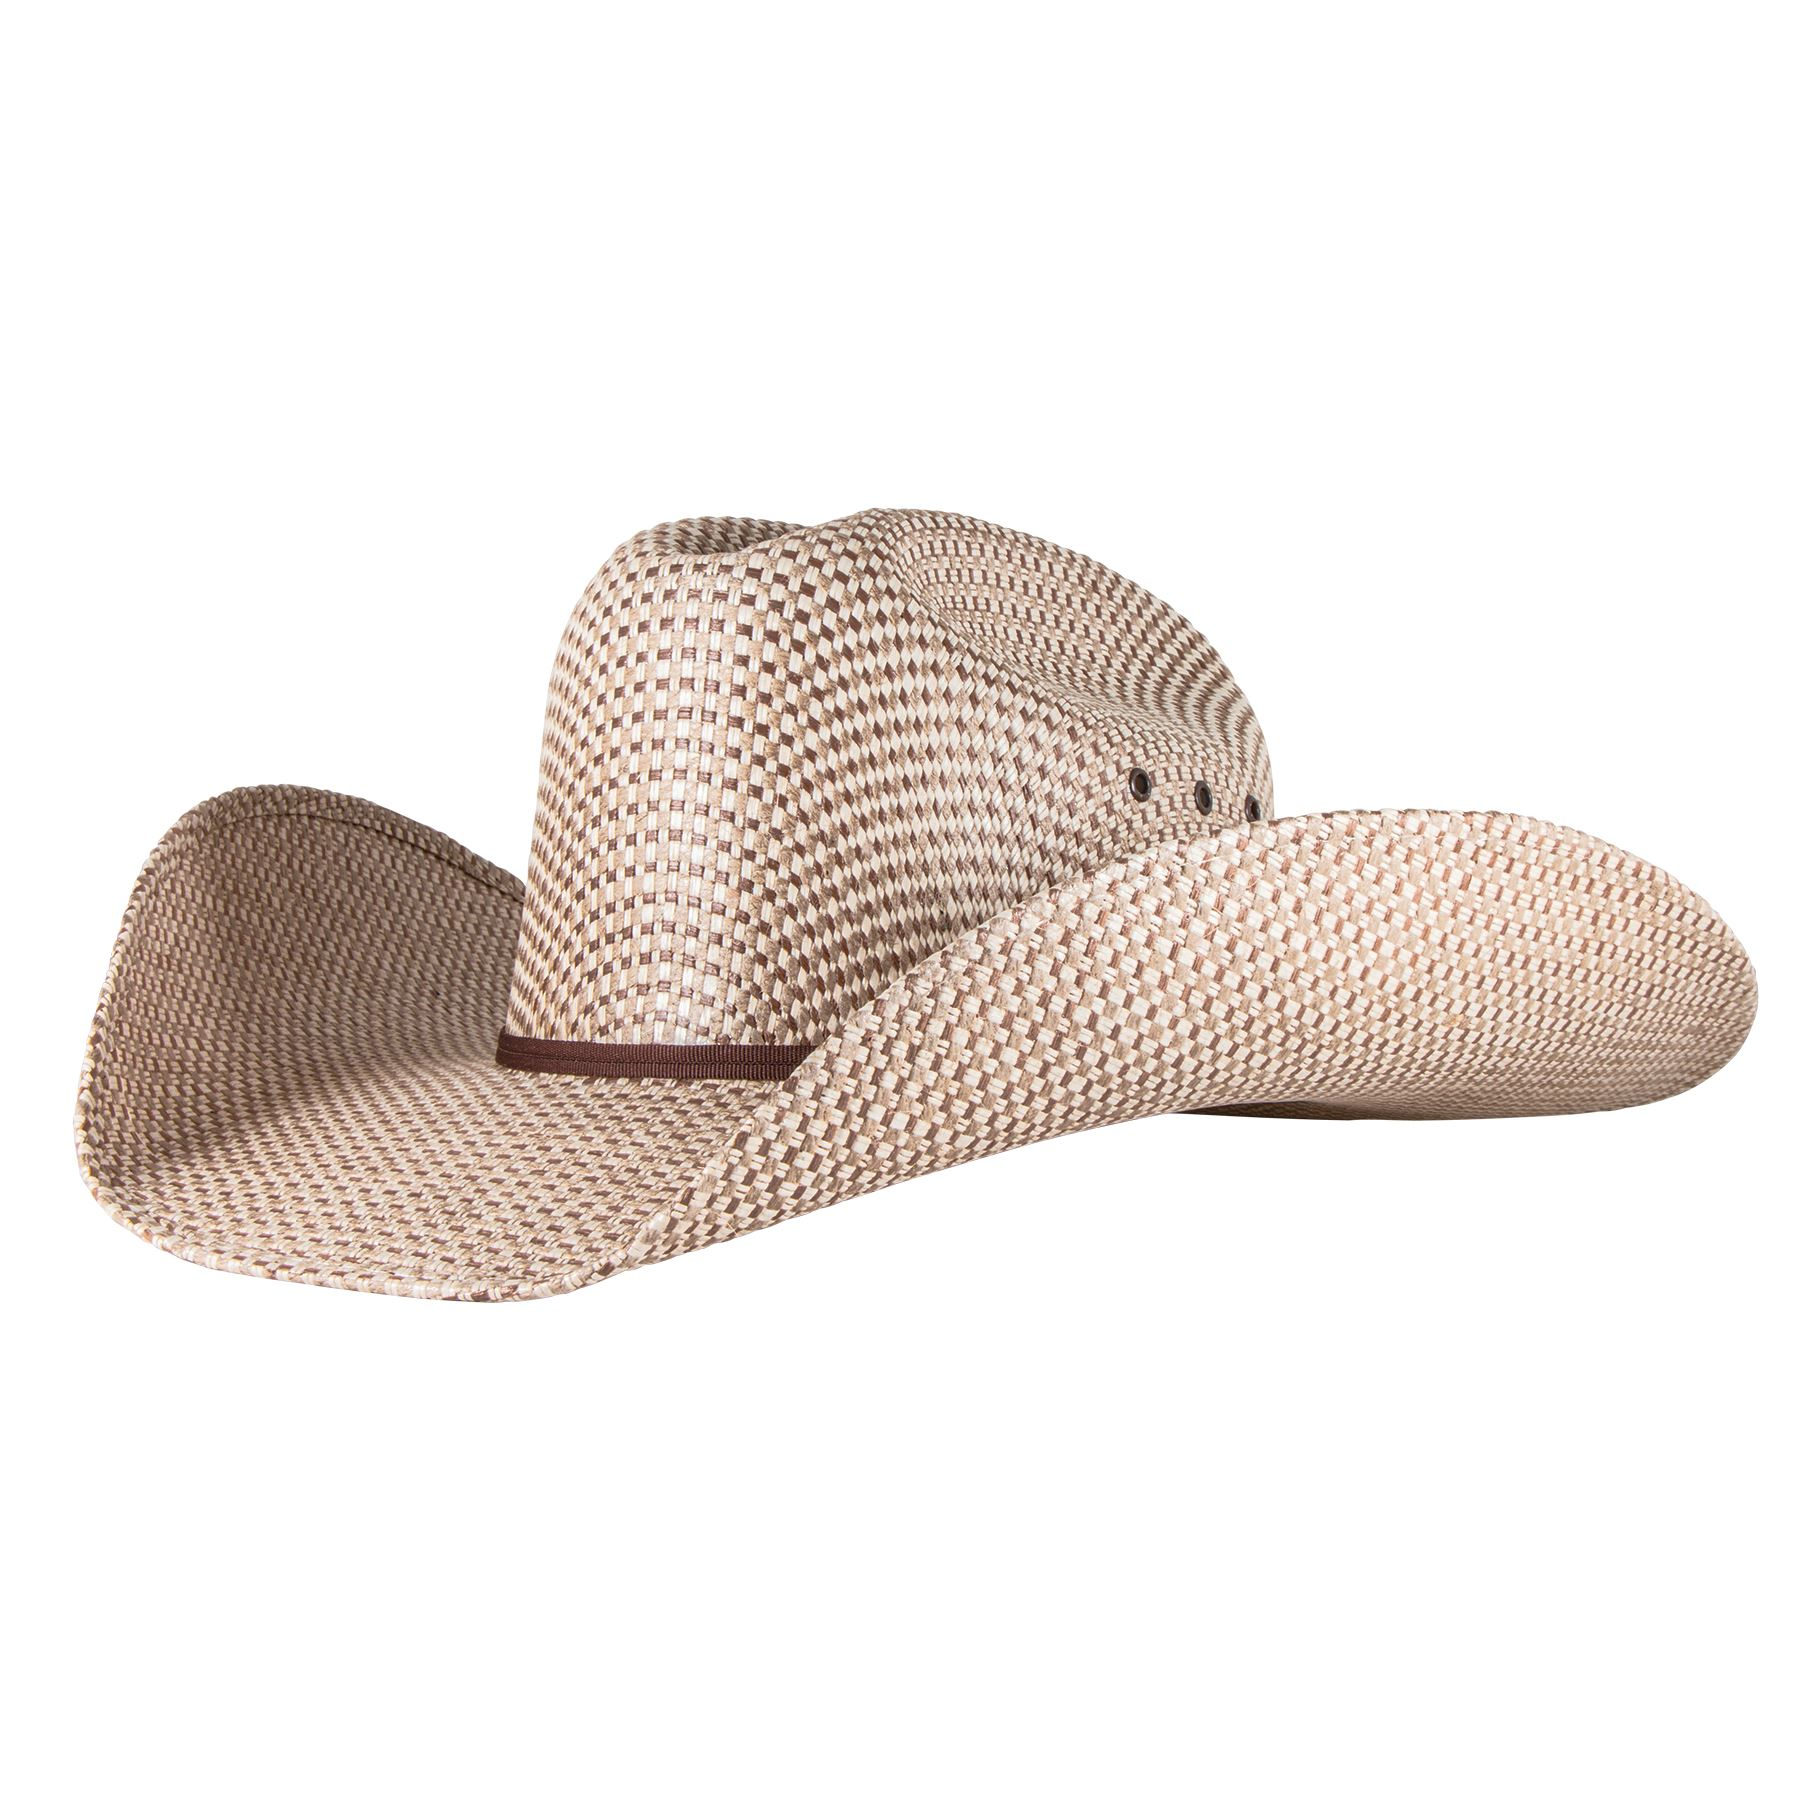 ... Rodeo King Rancher 3 Tone Straw Hat 0e912d16cae